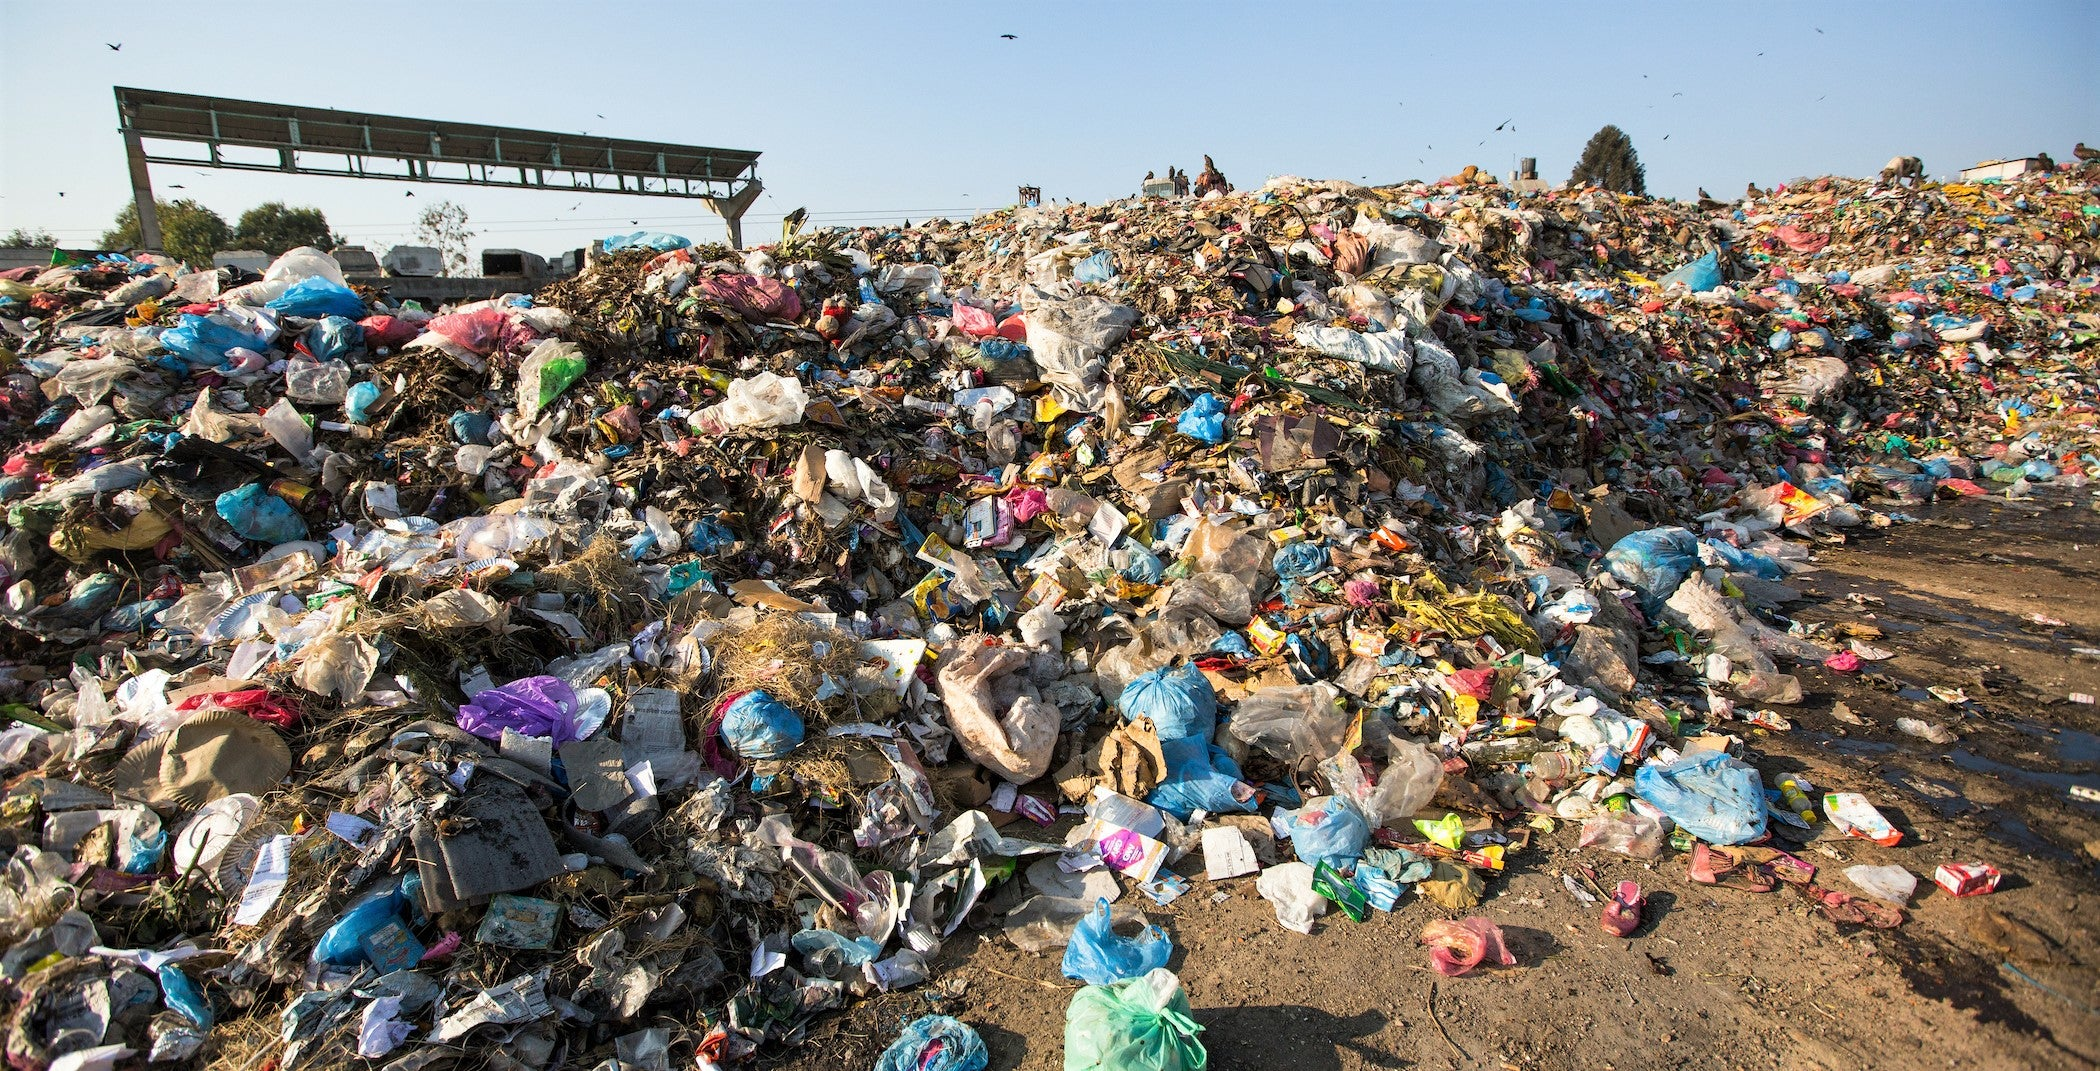 landfill site full of discarded food and swarming with seagulls